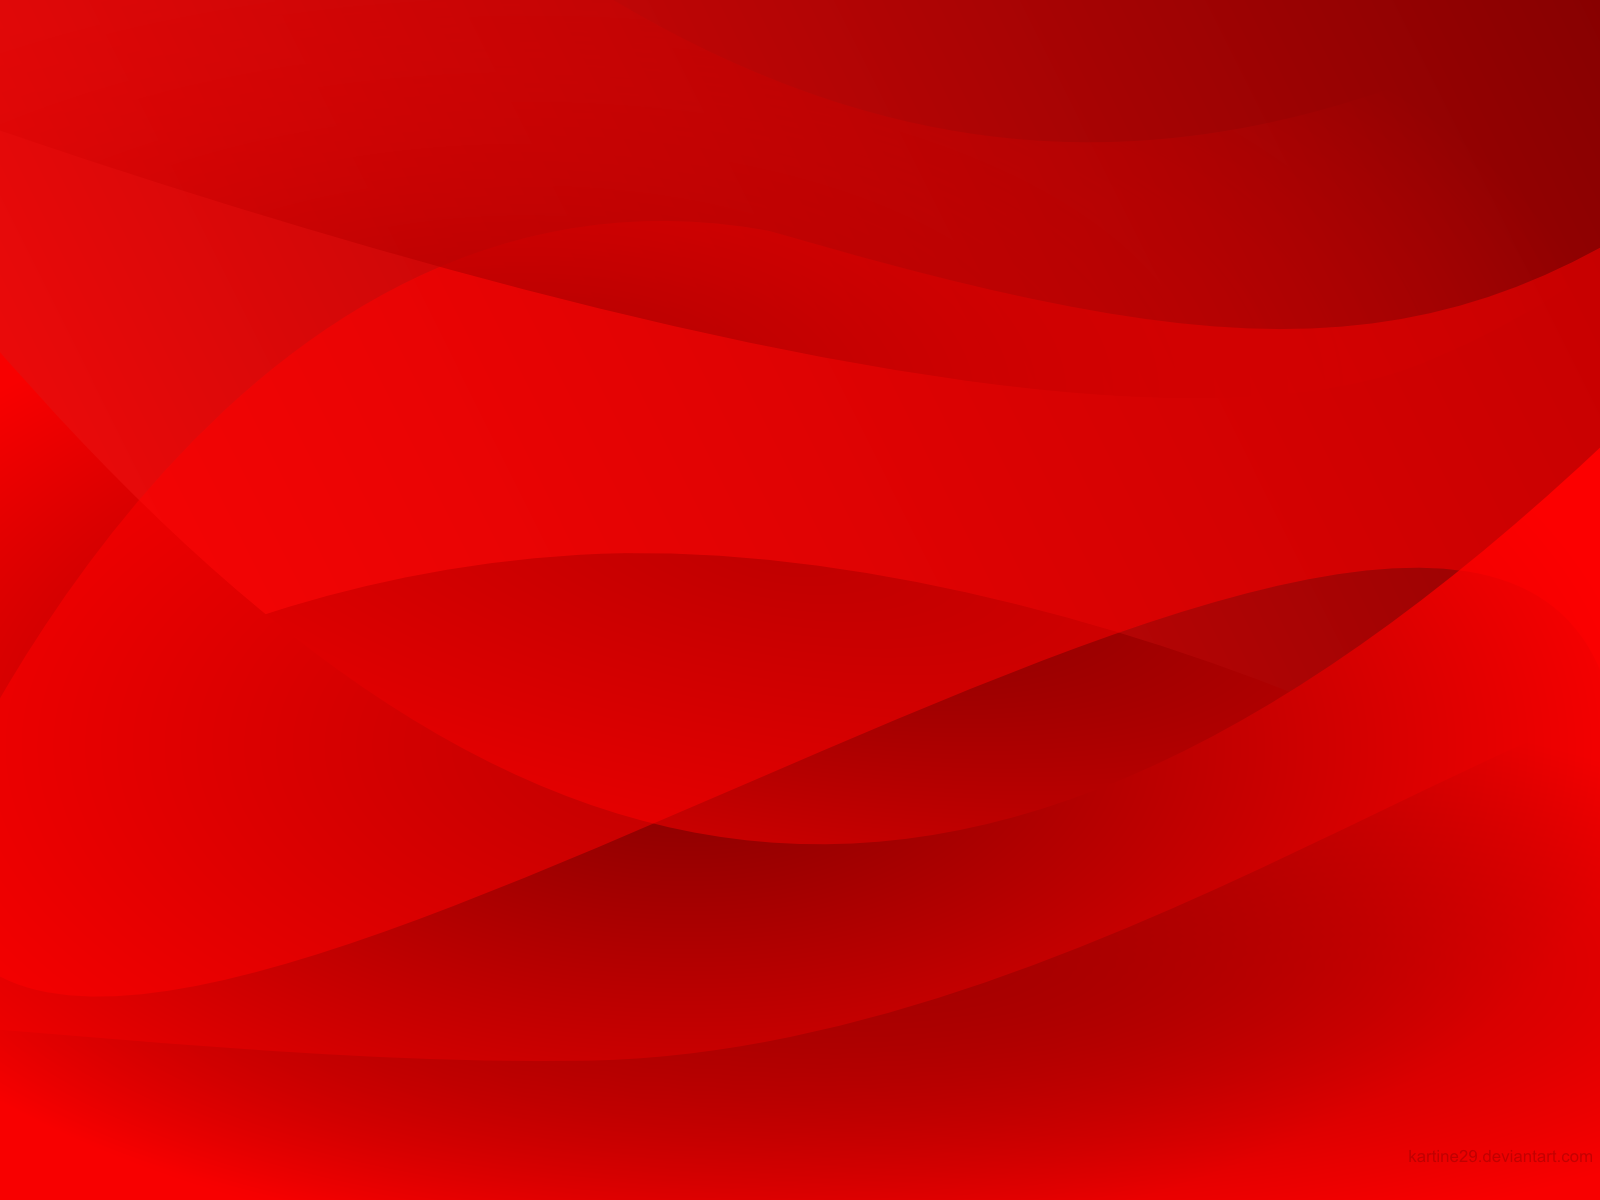 red abstract 1600x1200 by kartine29 customization wallpaper abstract 1600x1200